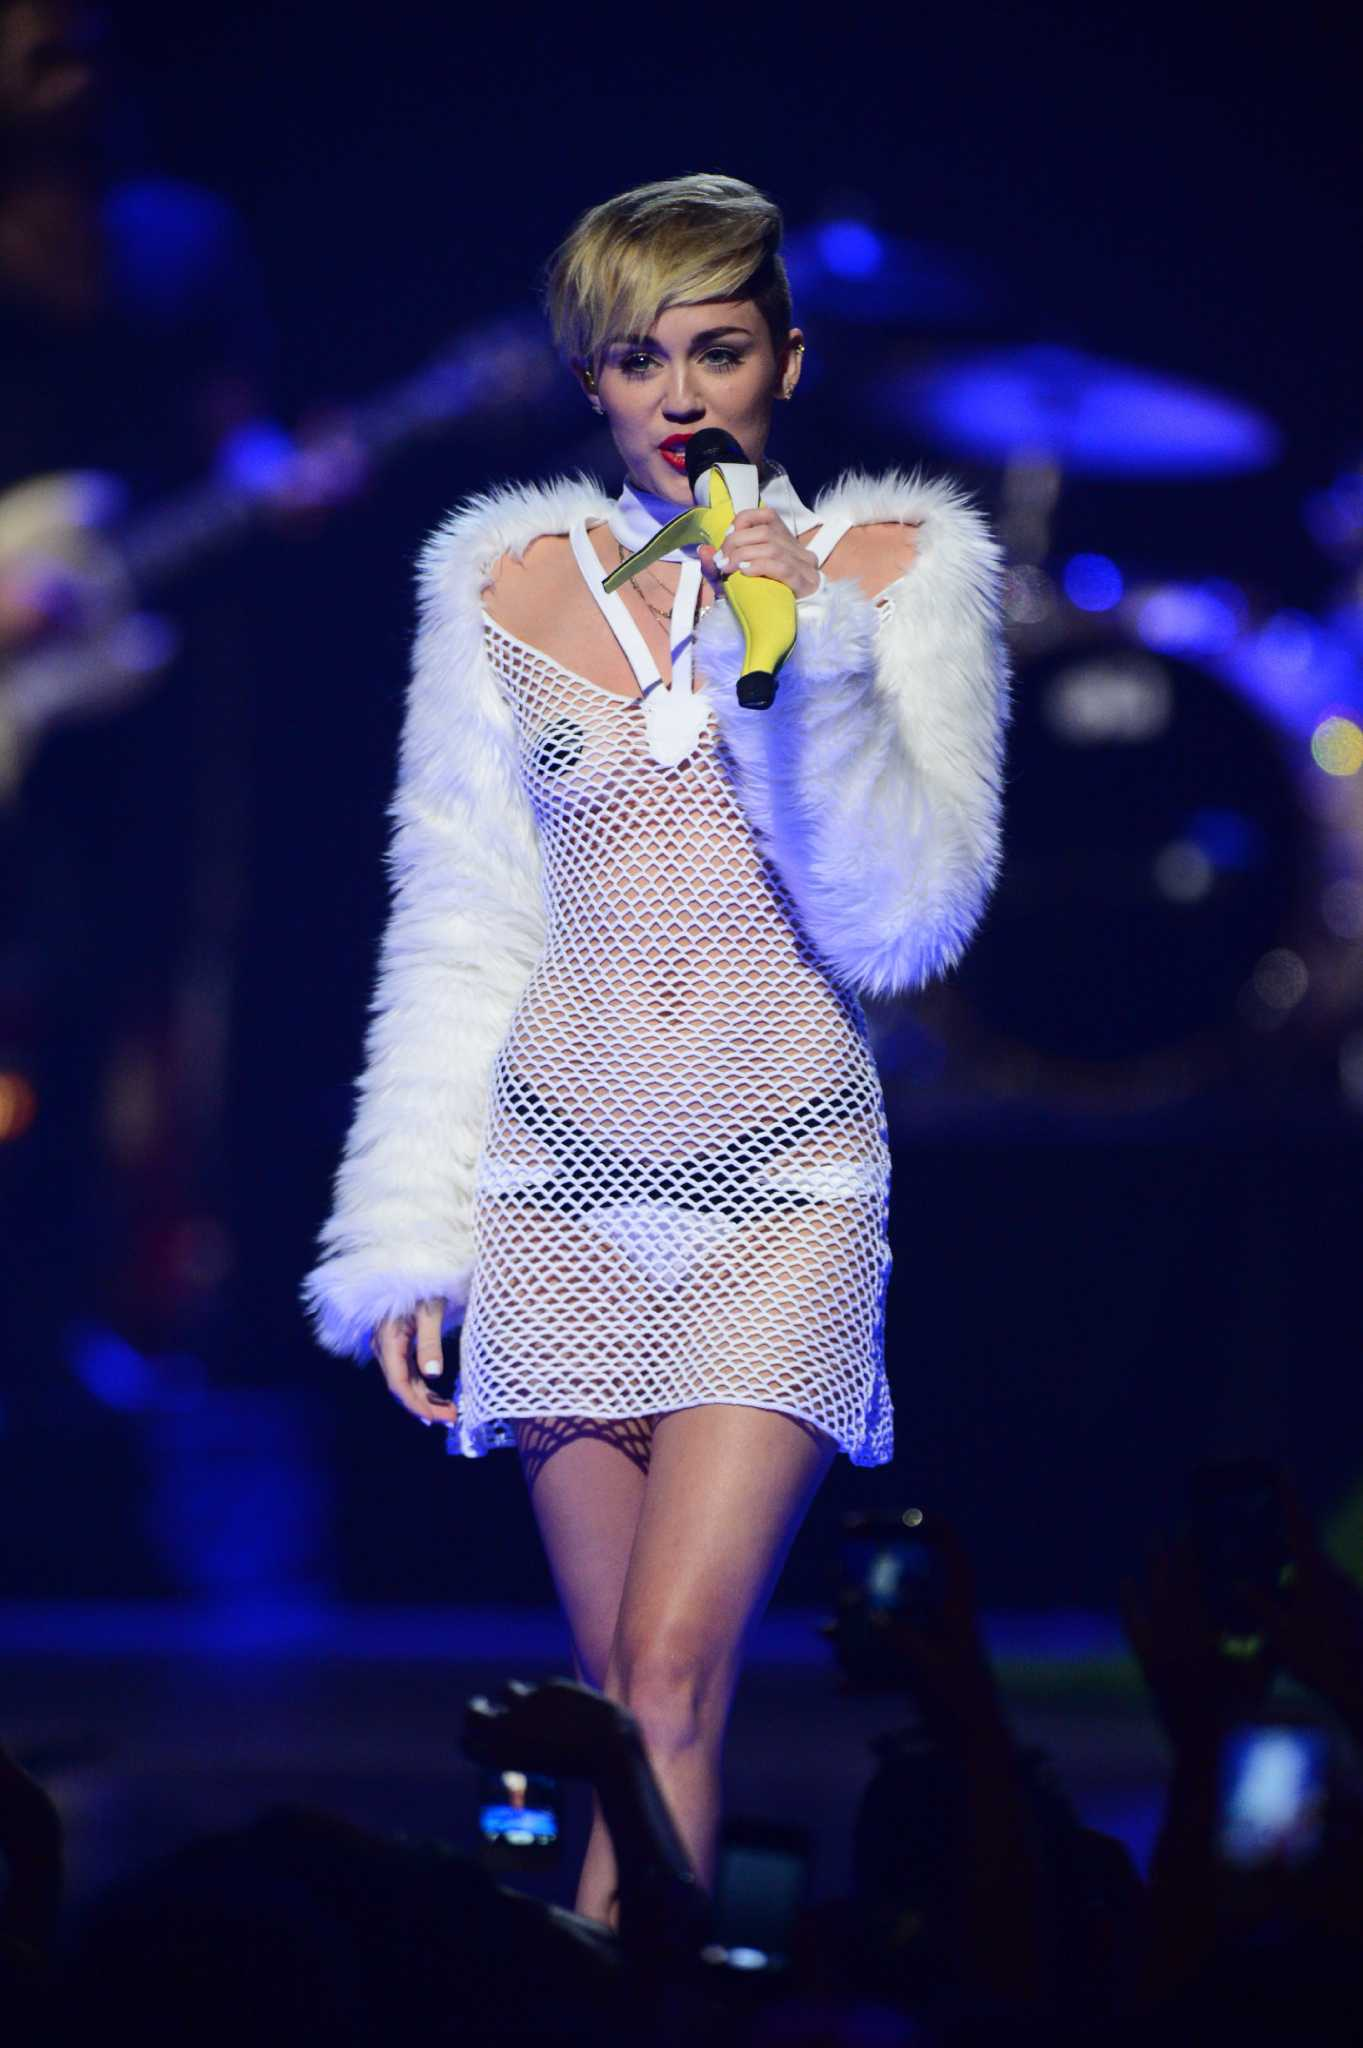 miley cyrus having sex video Dec 2015  From the early days of her pop music career, singer Miley Cyrus has served